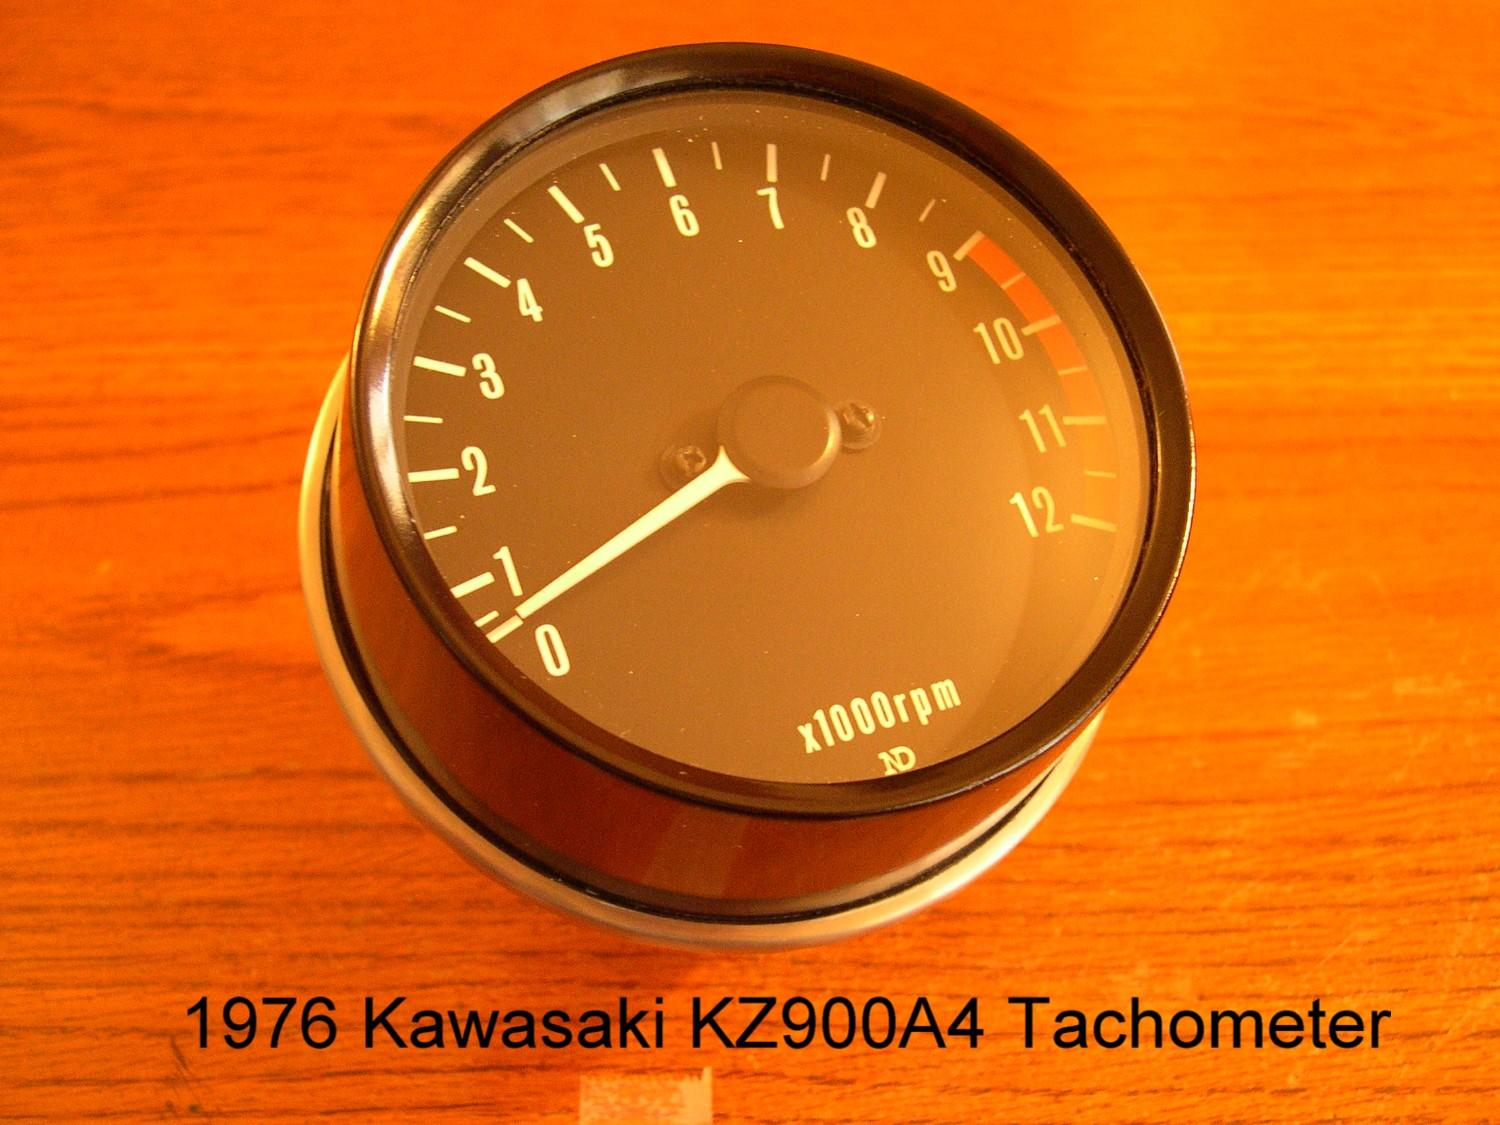 1976 tacho:with the arrival of the z900-a4, kawasaki dropped the brake  light warning light in the tachometer  the redline remains at 9,000rpm